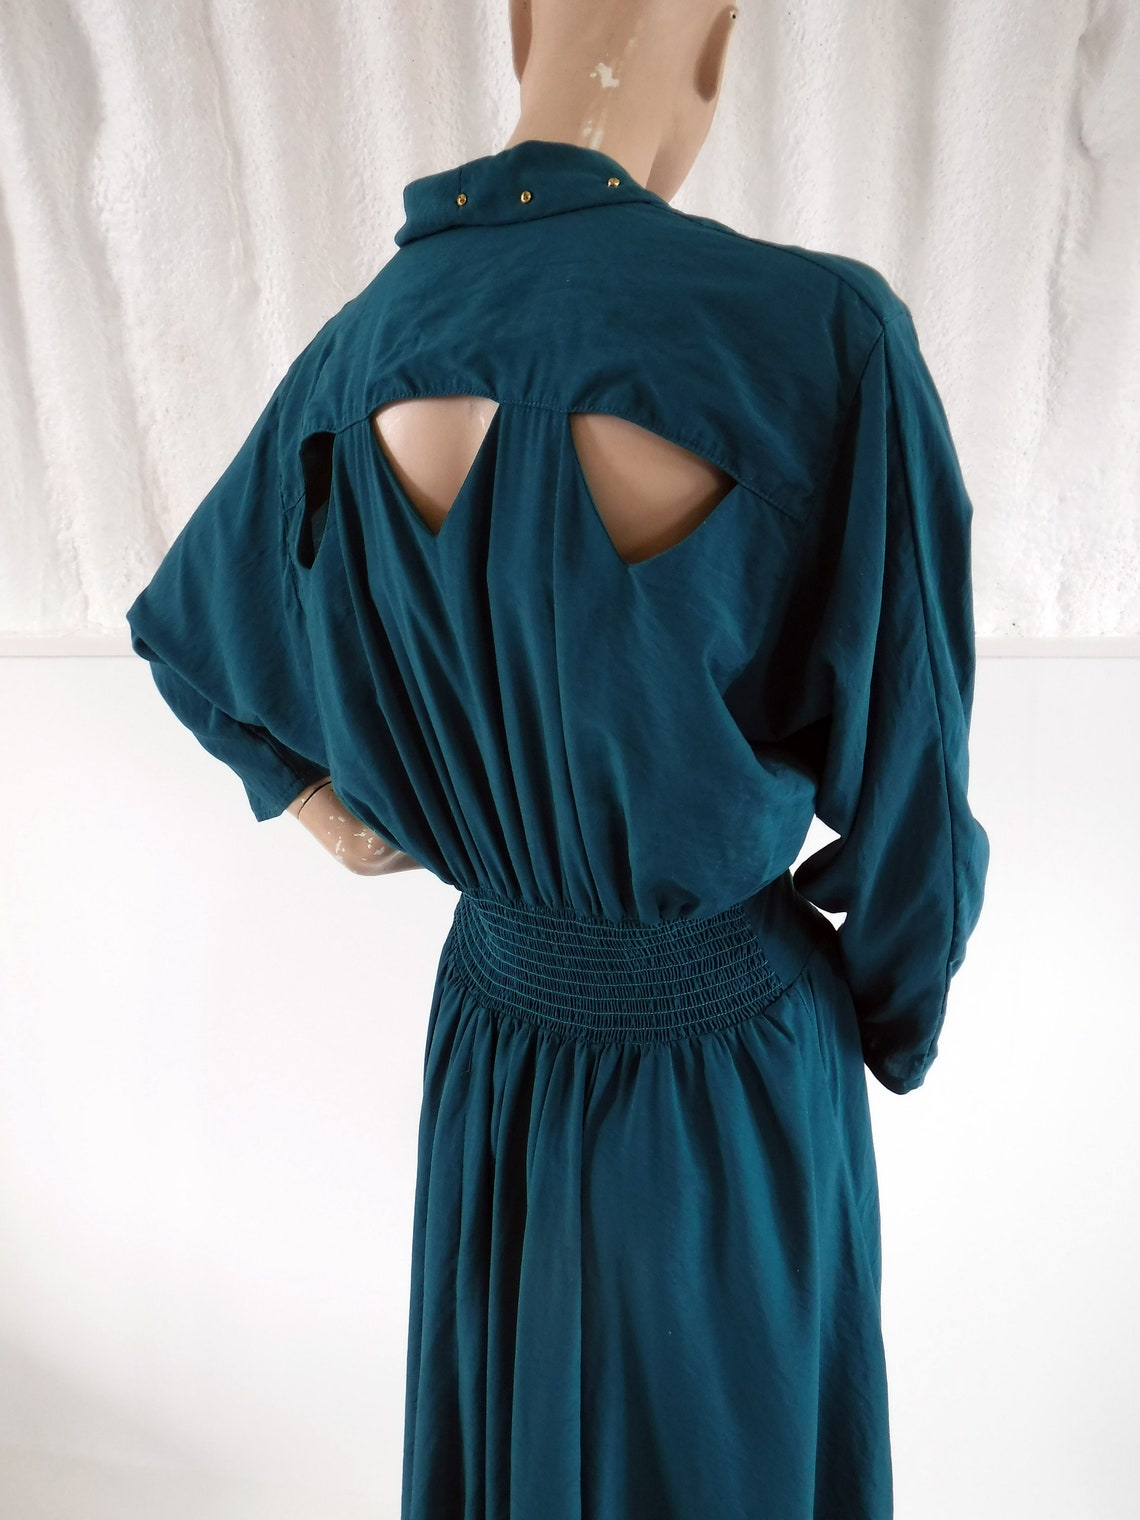 1980s Unit Seven Green Dress with Gold Studded Collar &